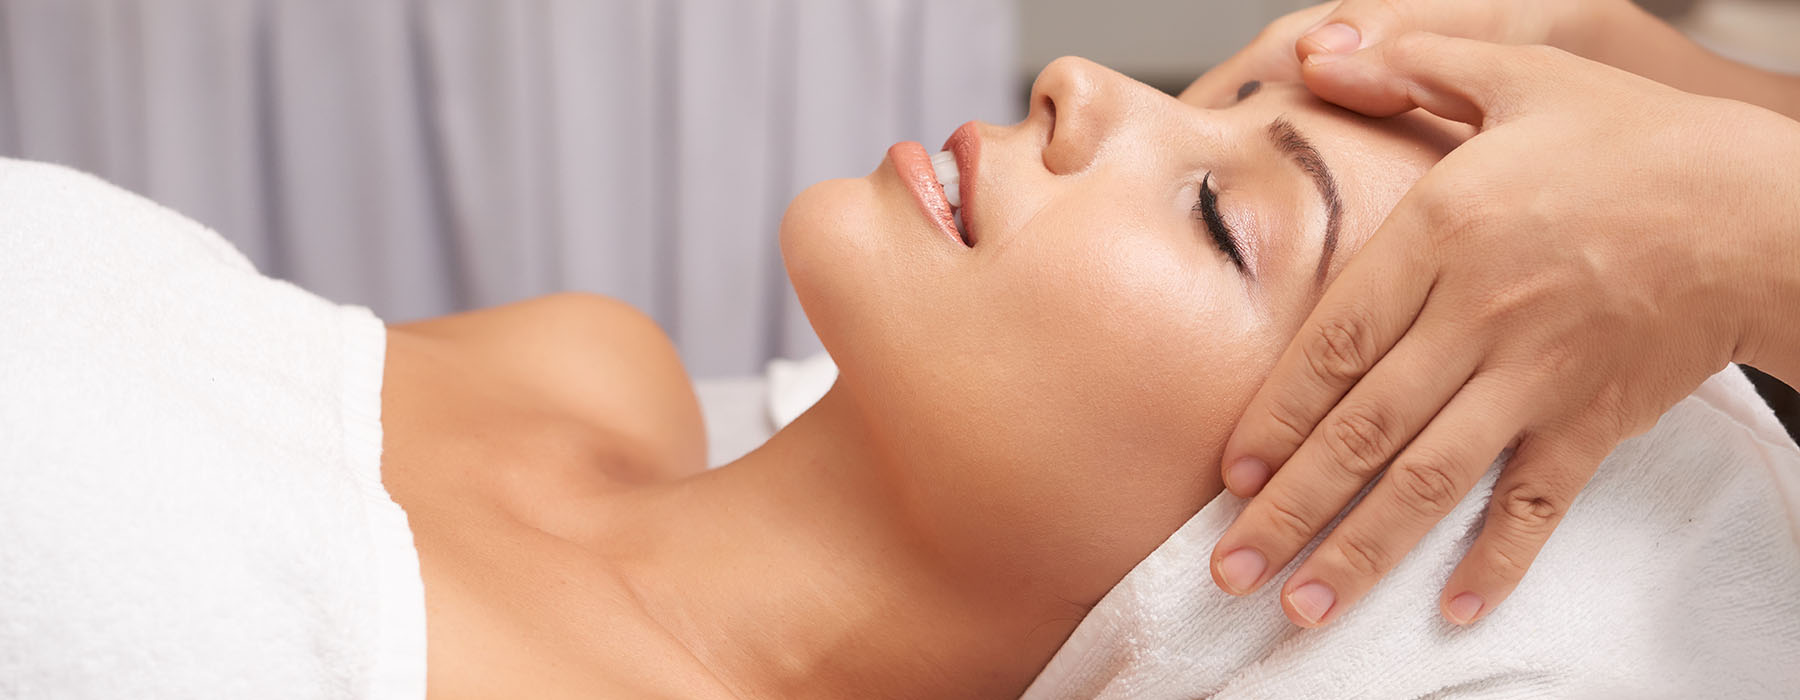 We house an array of luxury treatments, services and premium products from top beauty brands